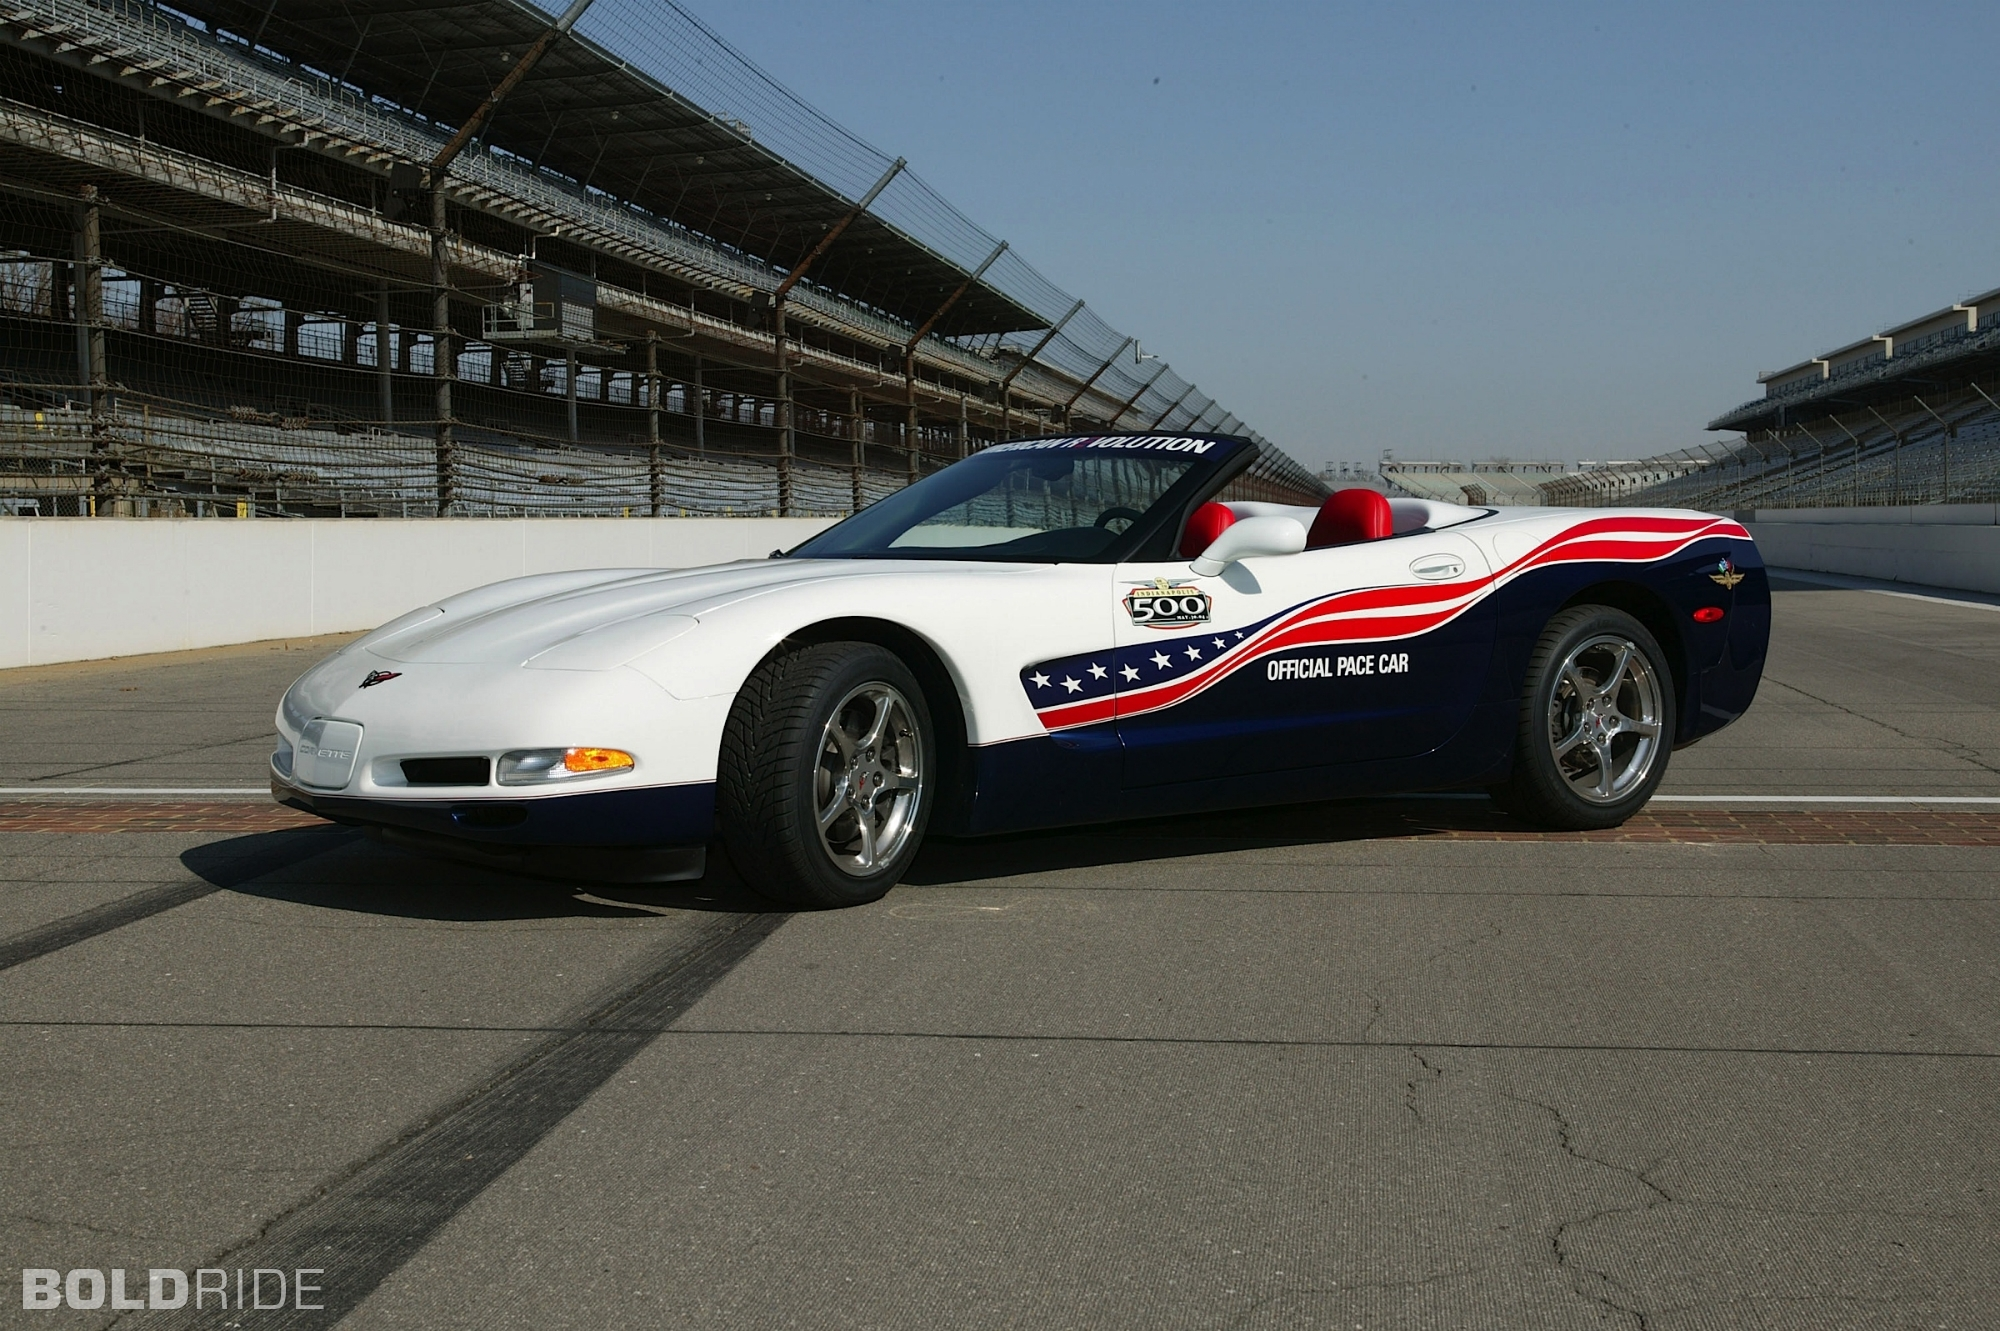 2019 Indy 500 Pace Car: 2017 Chevrolet Corvette Stingray Indy 500 Pace Car